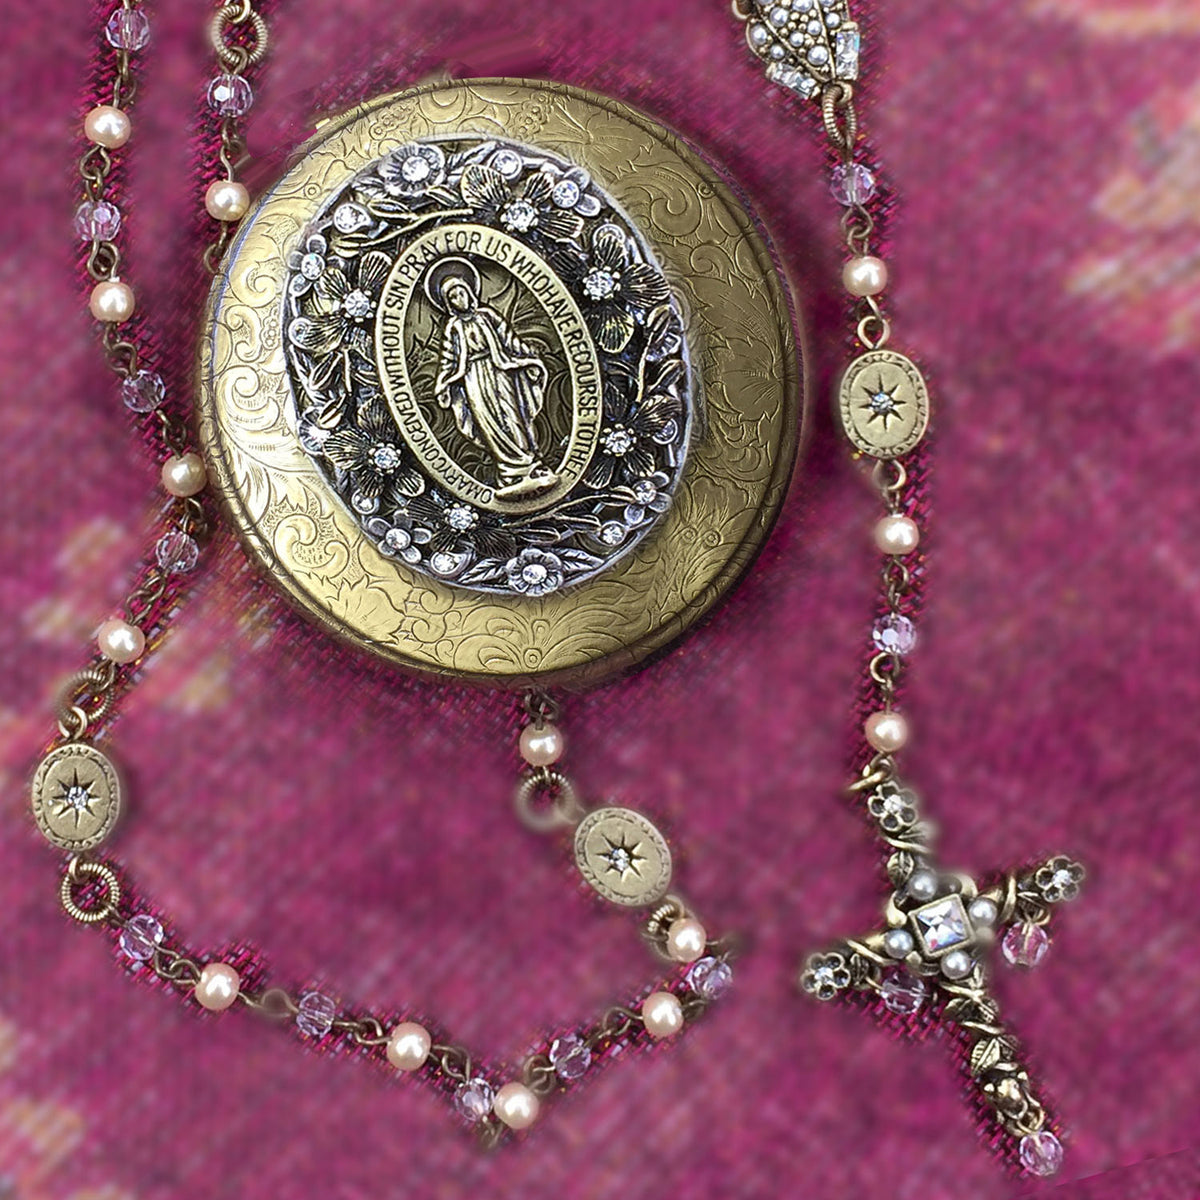 Our Lady of Miracle Vintage Rosary and Box Set